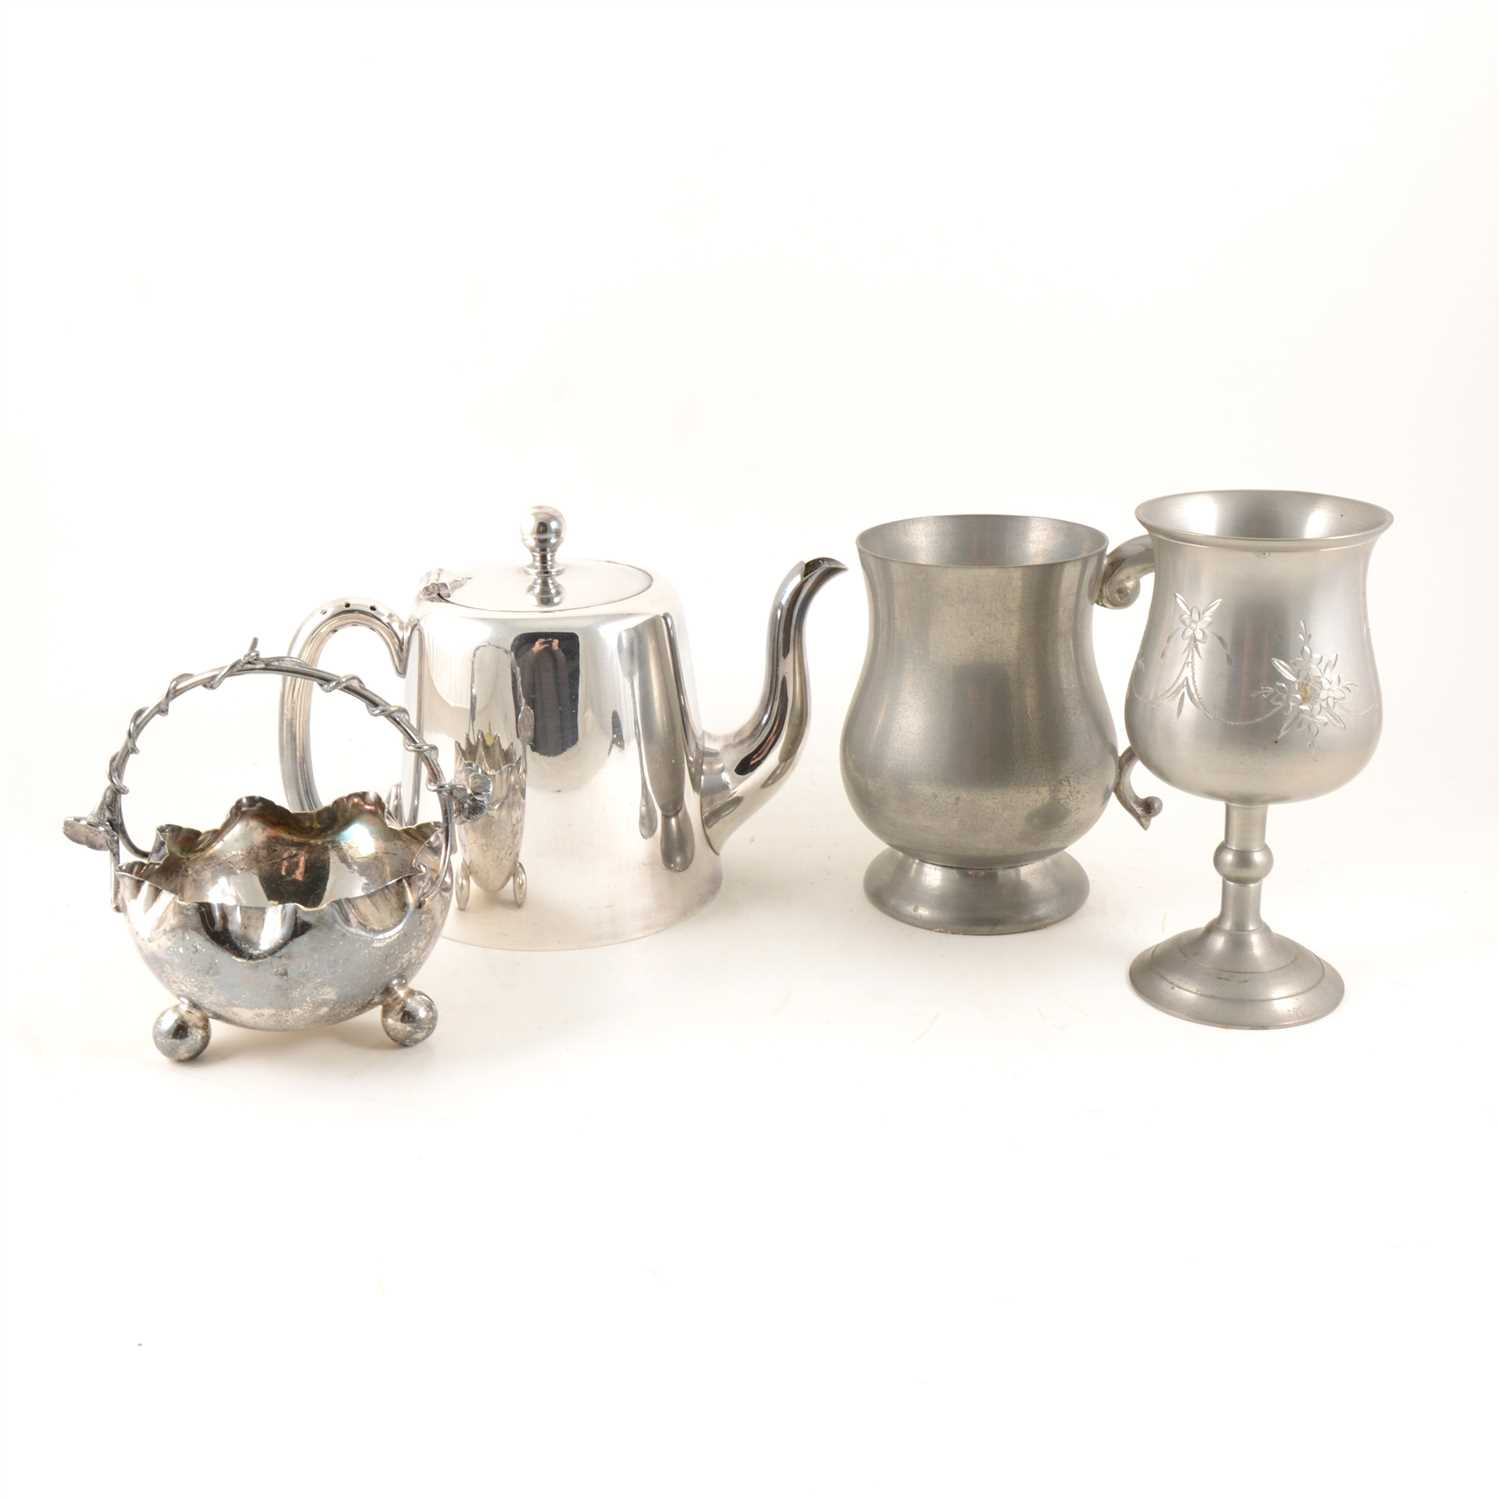 Lot 140-A Mappin & Webb oak canteen of silver-plated cutlery in the rat tail design, twelve place settings, silver-plated tea ware, cocktail shaker, ice bucket etc.